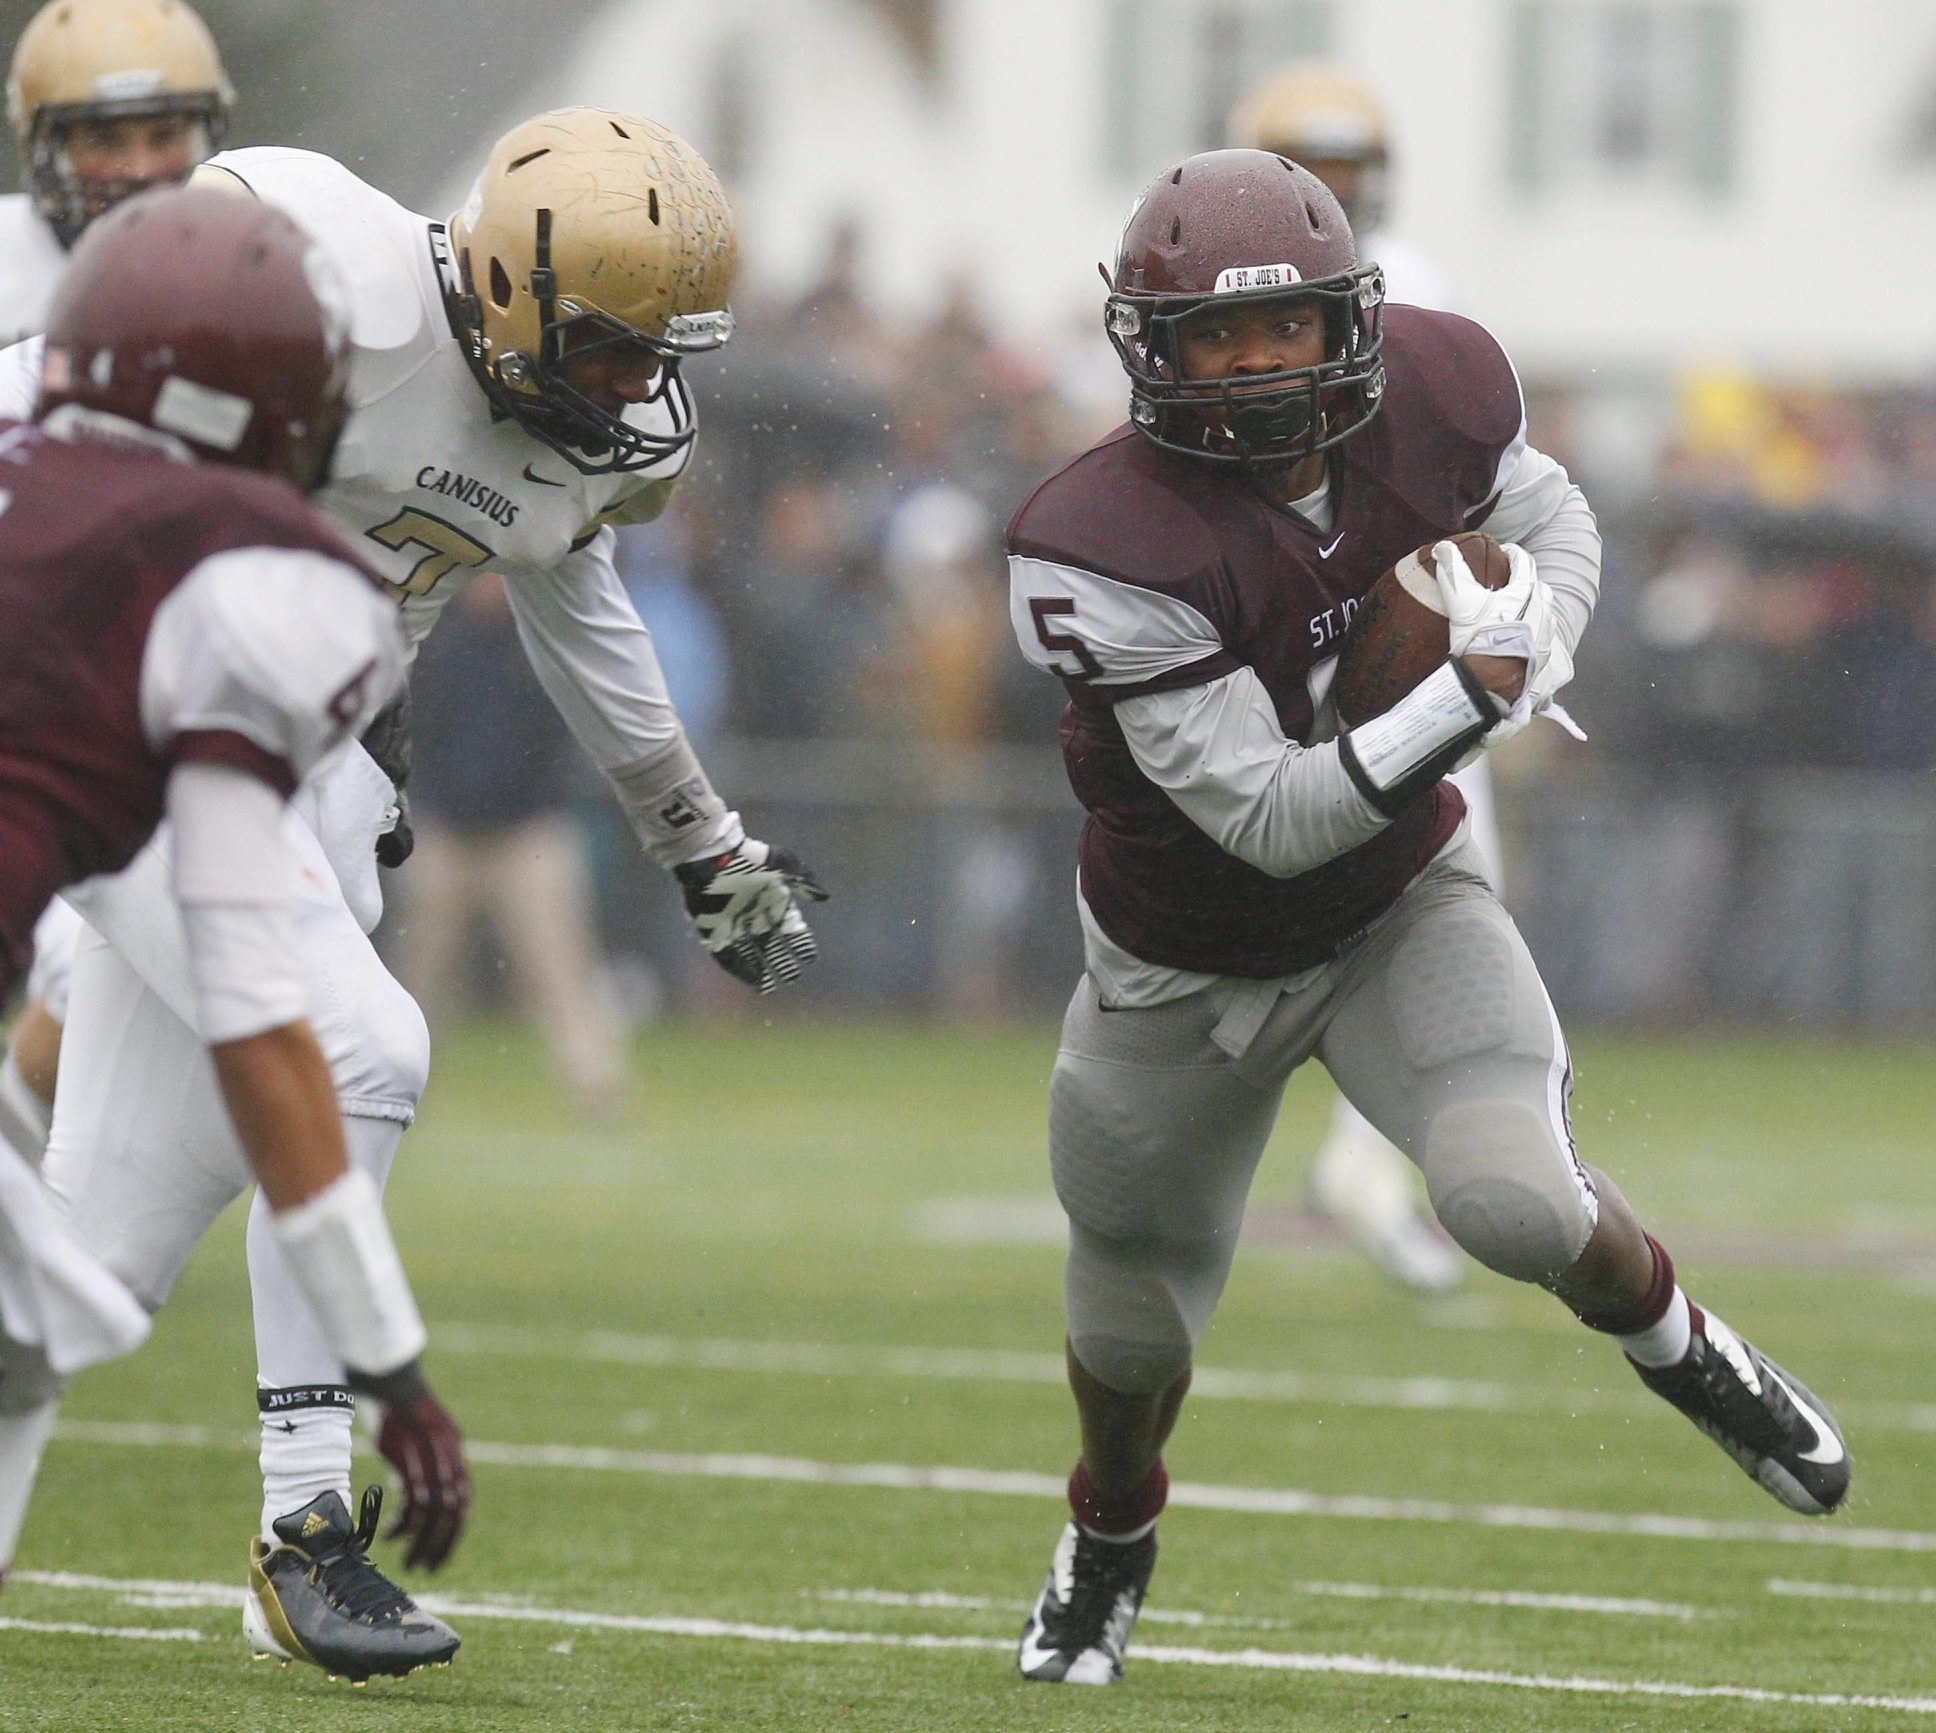 St. Joe's Roderick Payne tries to break away from Canisius' Qadree Ollison during the first half of the game at St. Joe's Saturday, October 27, 2012.